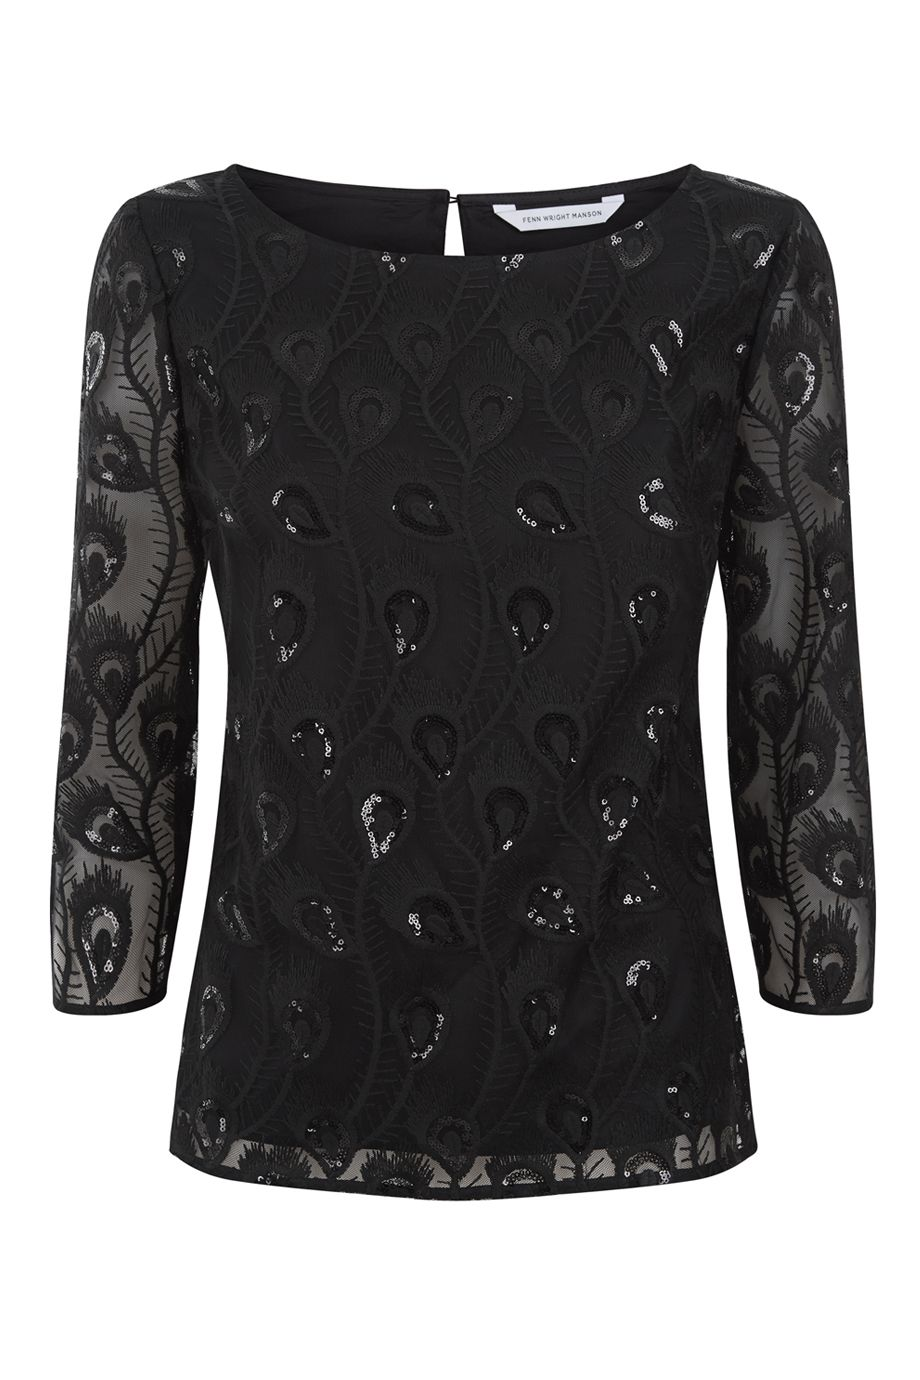 Fenn Wright Manson Monique Top, Black